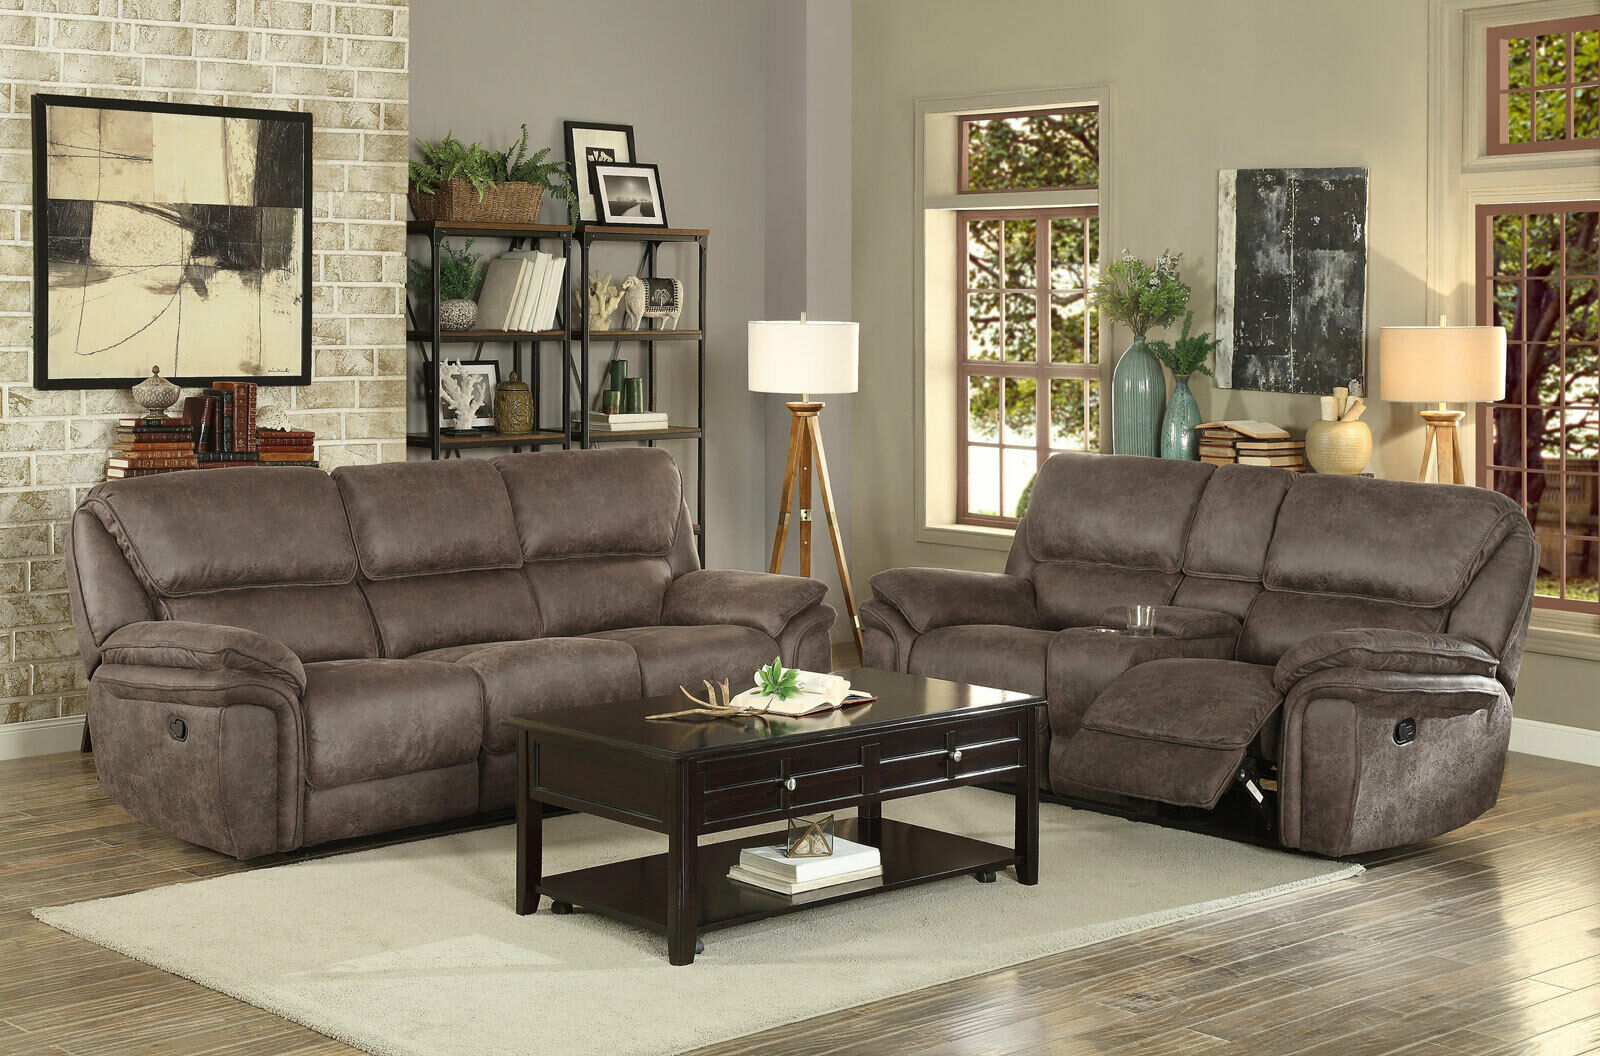 New living room brown fabric reclining sofa couch set with - Fabric reclining living room sets ...